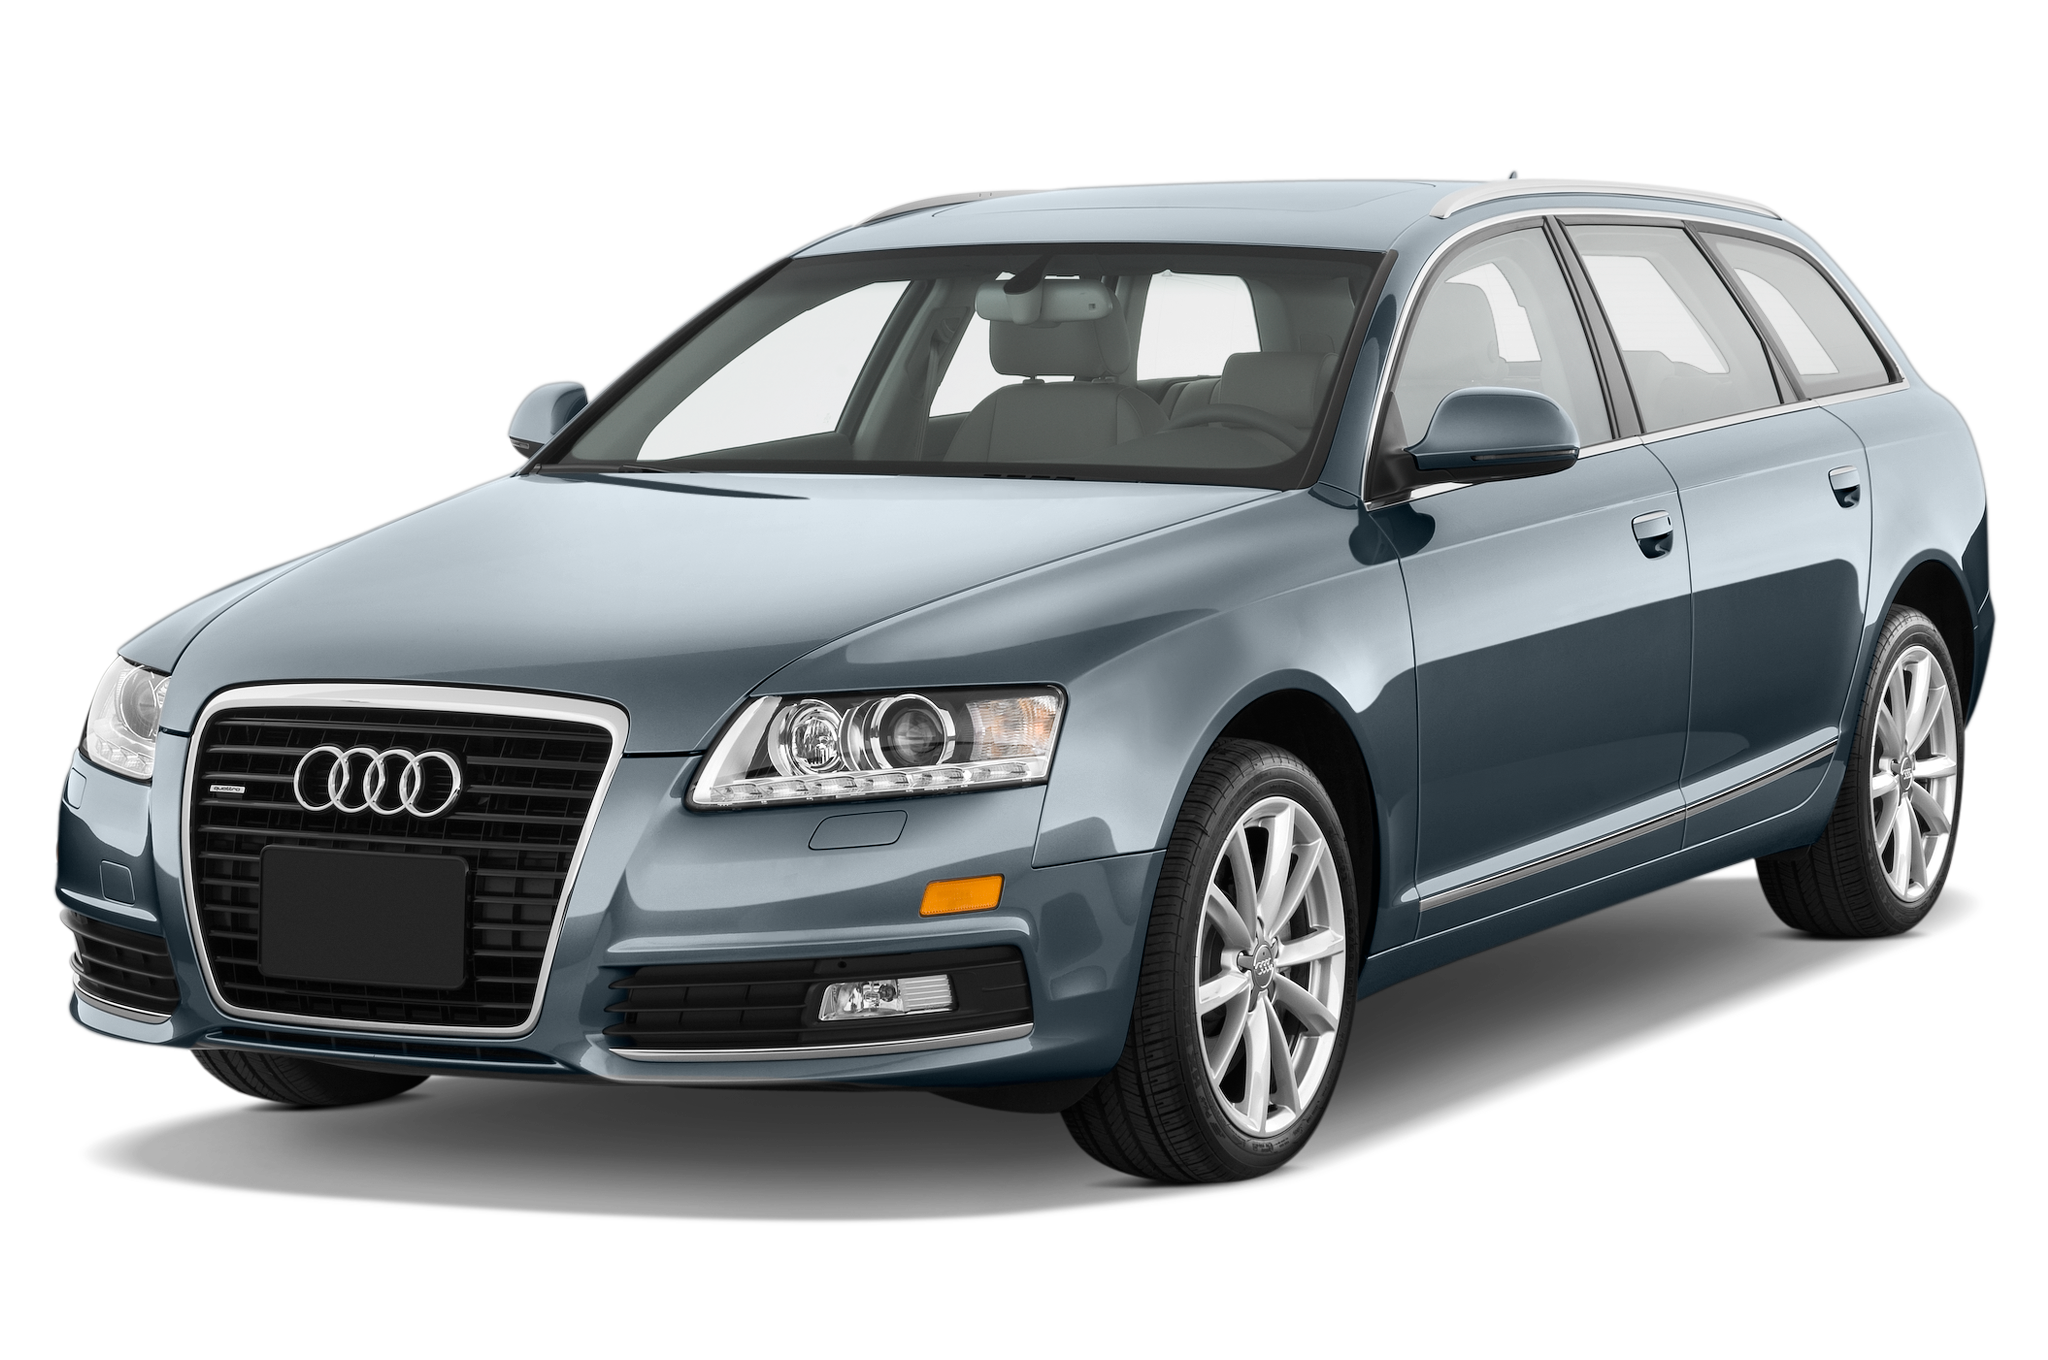 2010 audi a6 3 0 tfsi quattro audi luxury sedan review. Black Bedroom Furniture Sets. Home Design Ideas